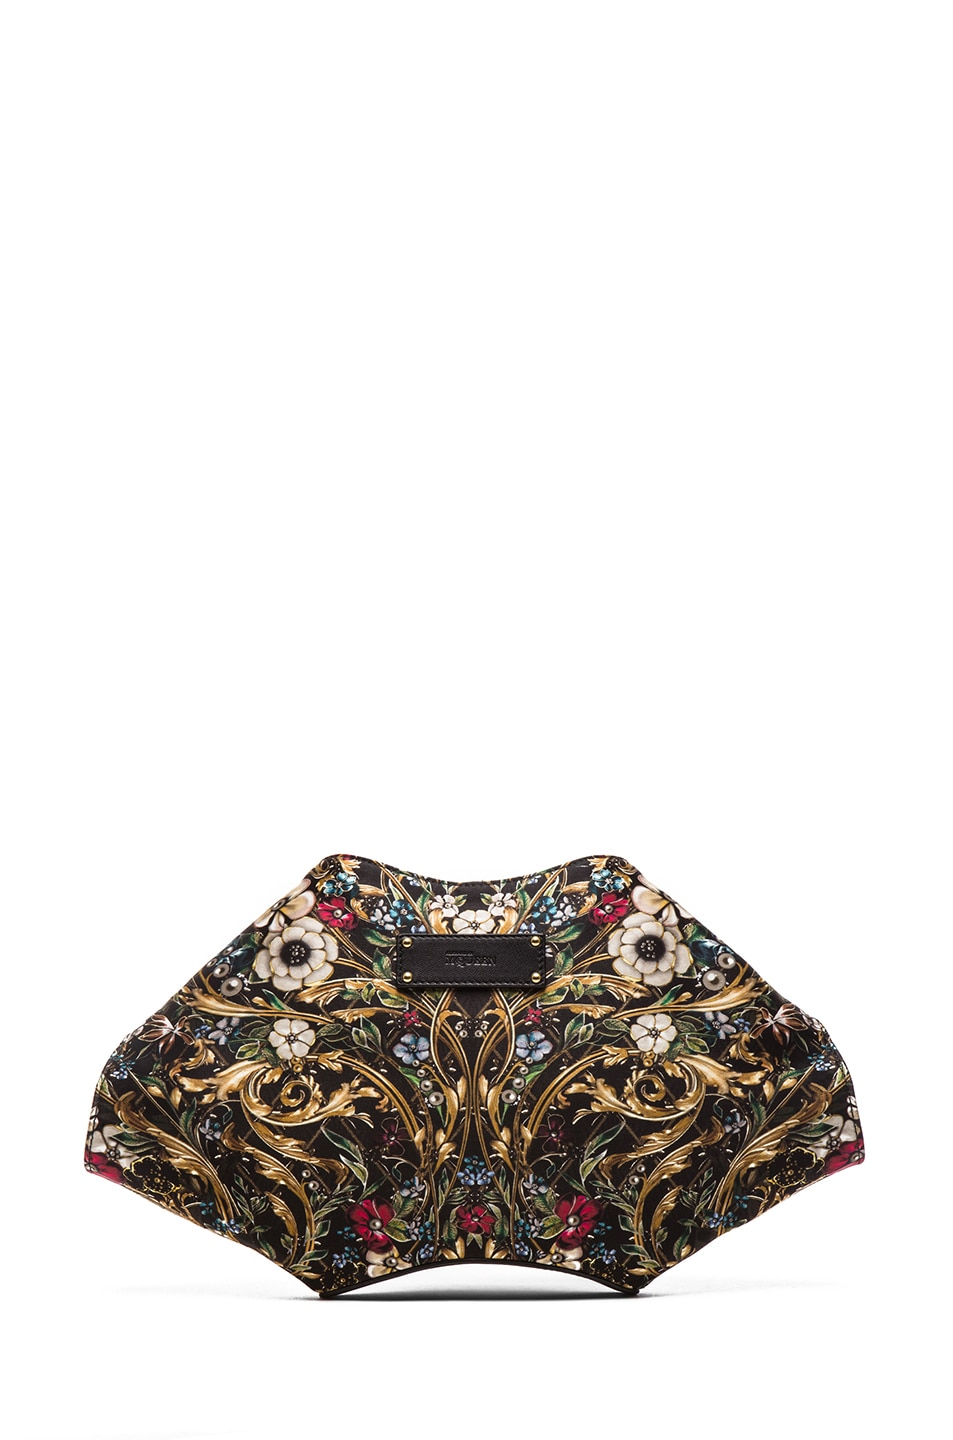 Image 2 of Alexander McQueen De Manta Floral Print Clutch in Black